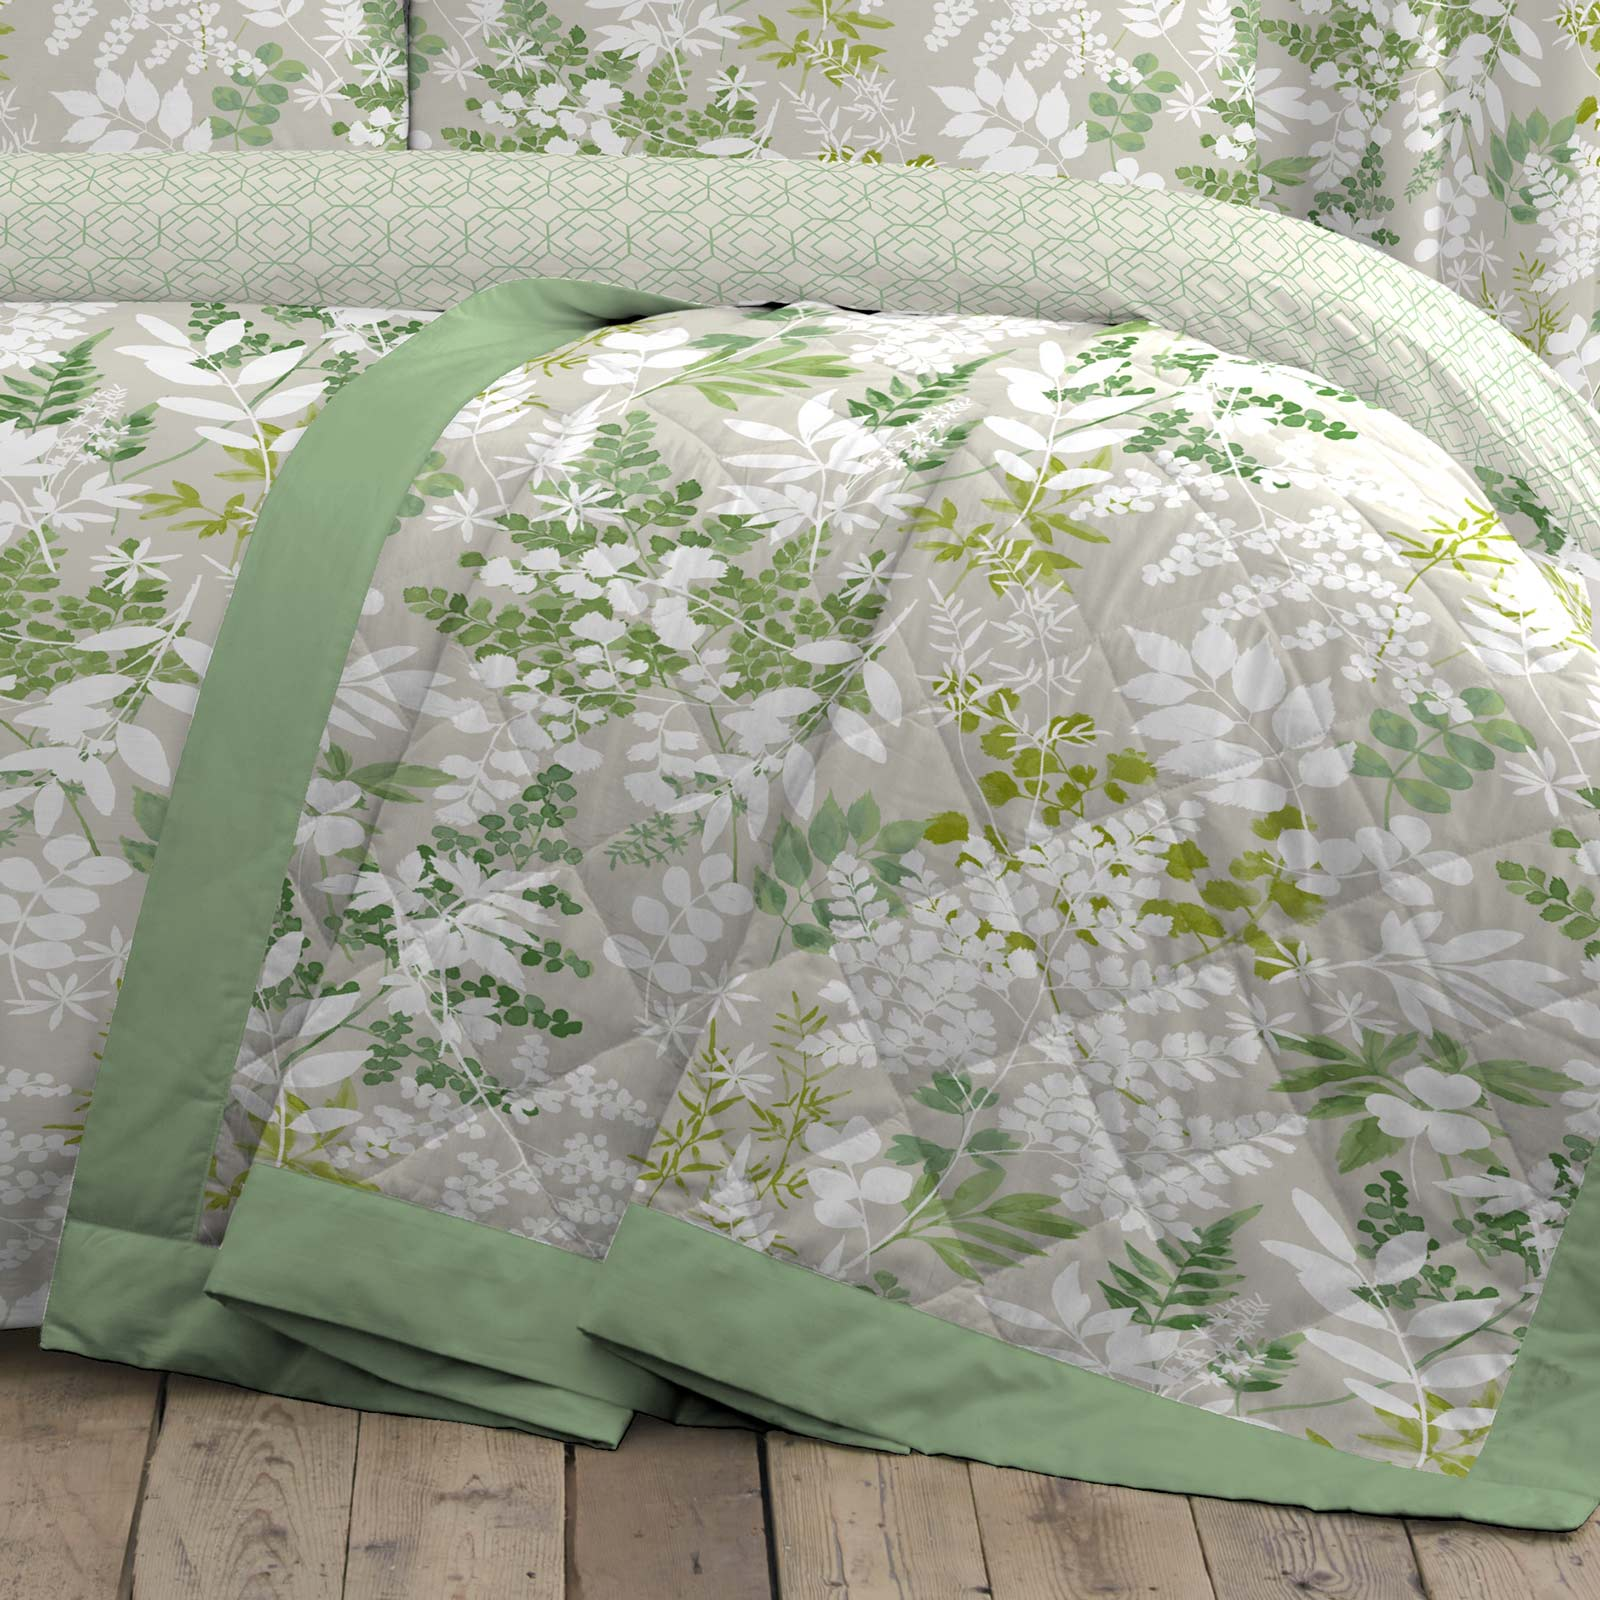 Delamere Botanical Leaf Reversible Green Duvet Cover Set - Bedspread 230cm x 195cm - Ideal Textiles